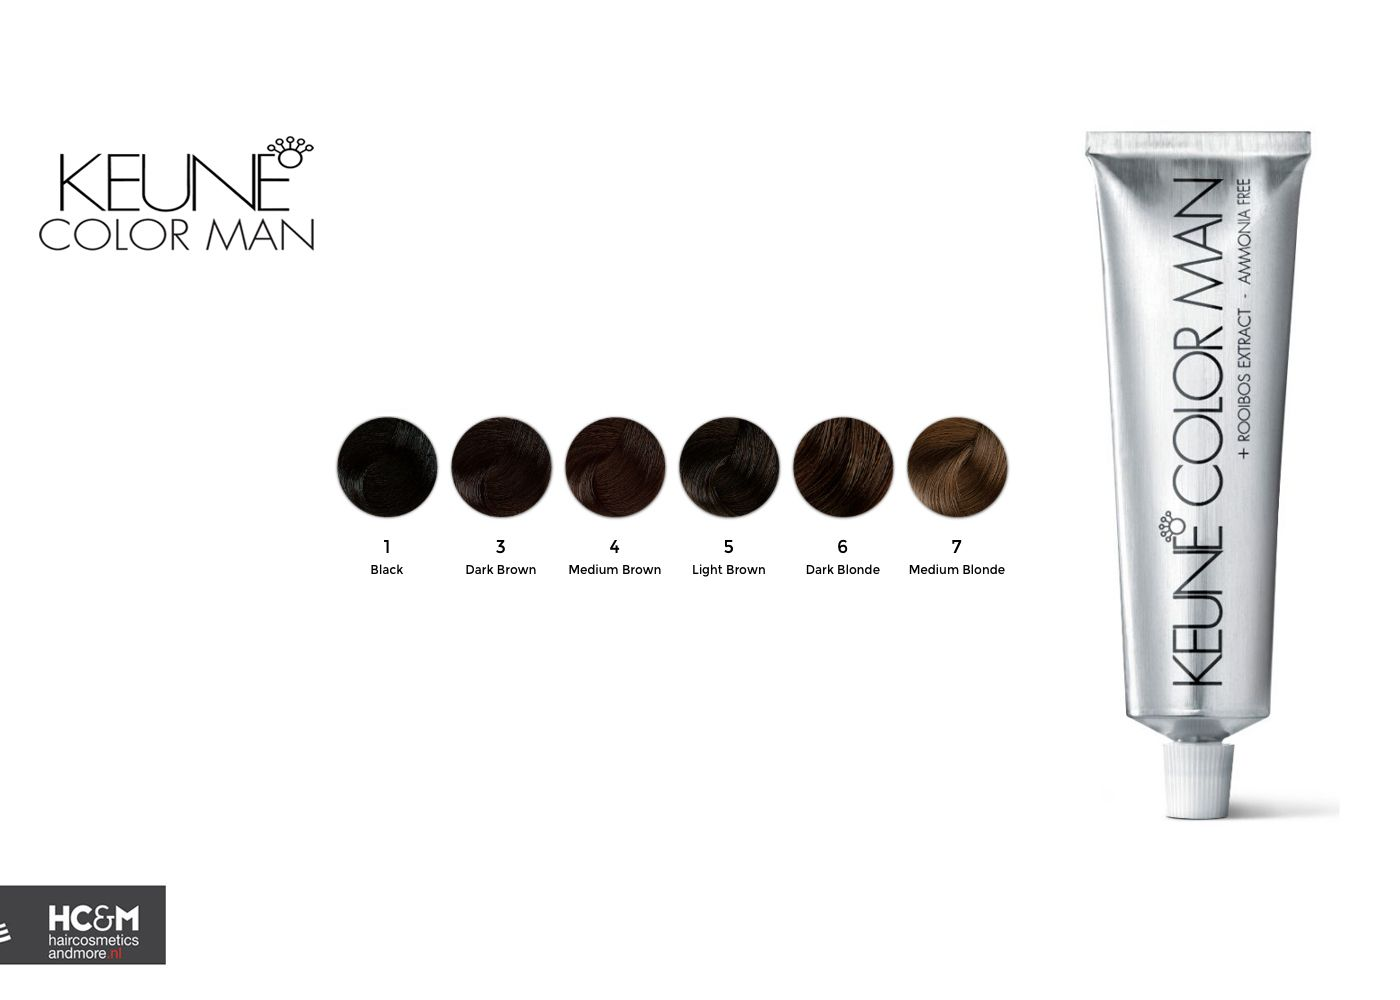 Keune Color Man Shades 2015 Hair Color Chart Brown To Blonde Color